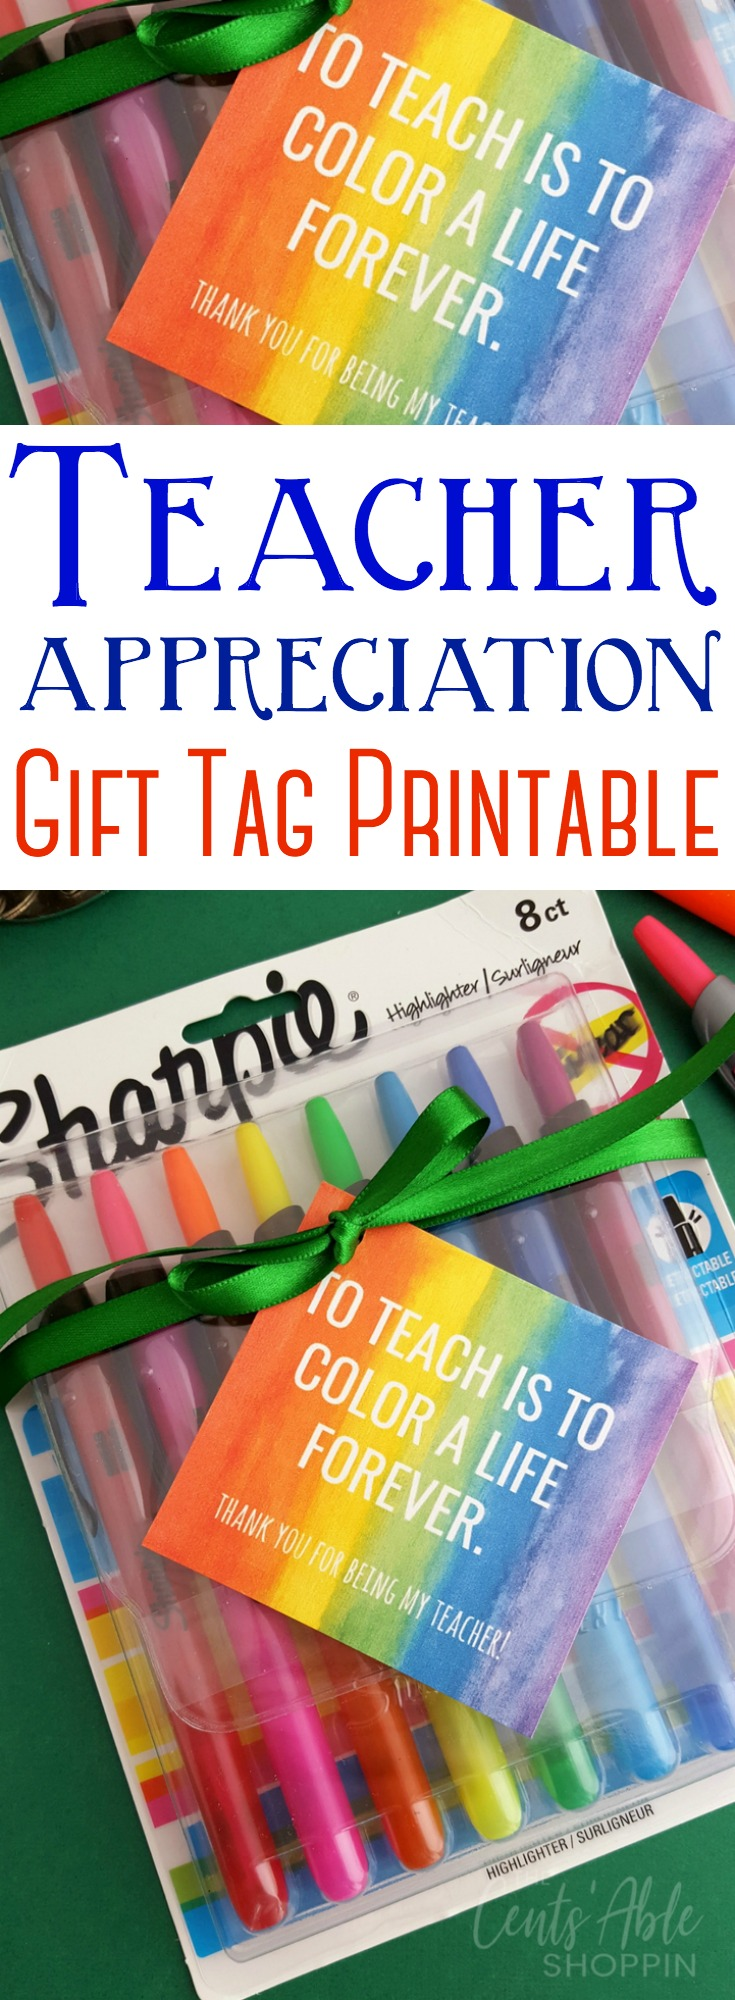 """To Teach is to Color a Life Forever"" Teacher Appreciation Gift Tag Printable - perfect to add to a bouquet or package of markers, highlighters or brightly colored pens! #printable #teacher #teacherappreciation #teachergift #teaching #education"